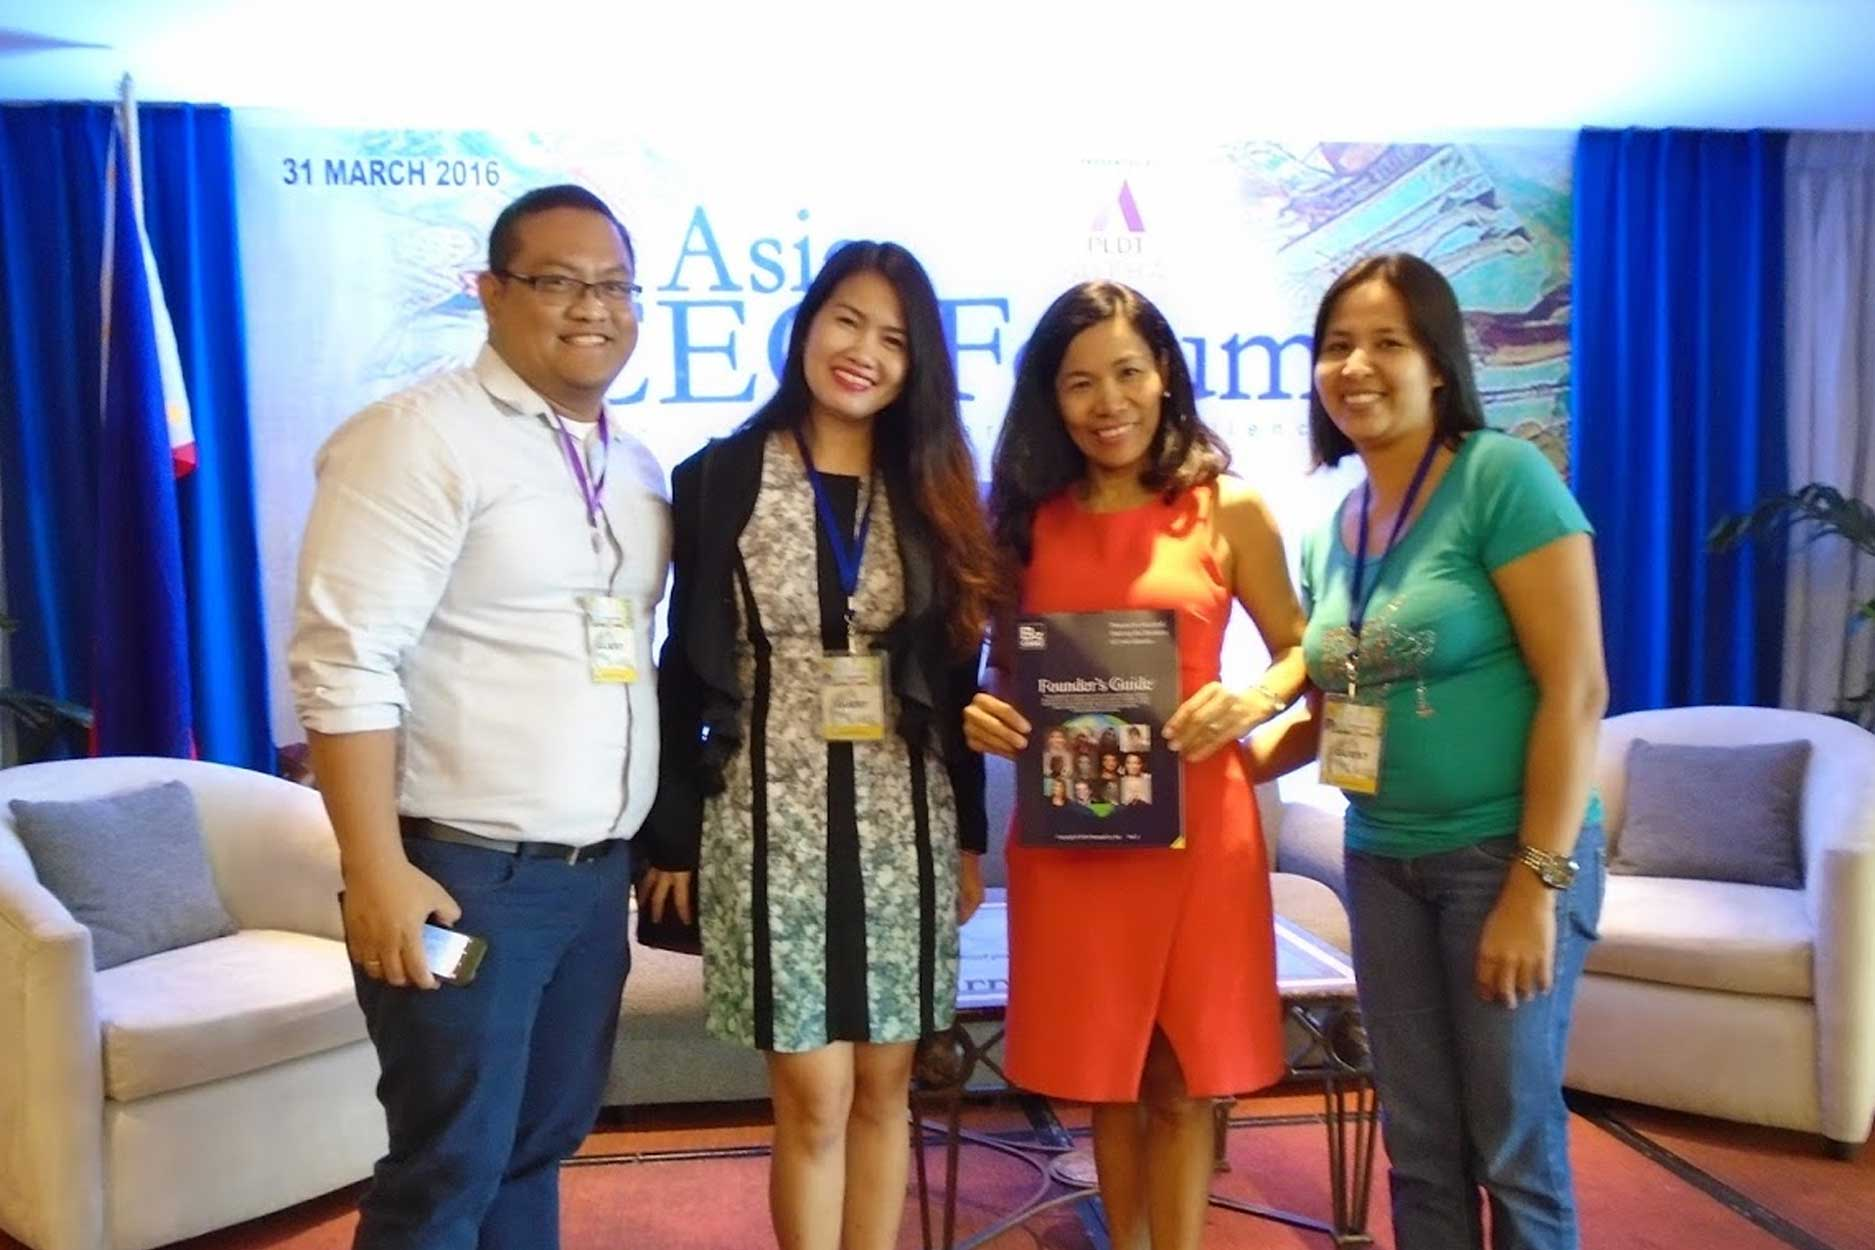 Founder's Guide Team with Asia CEO President Rebecca Bustamante